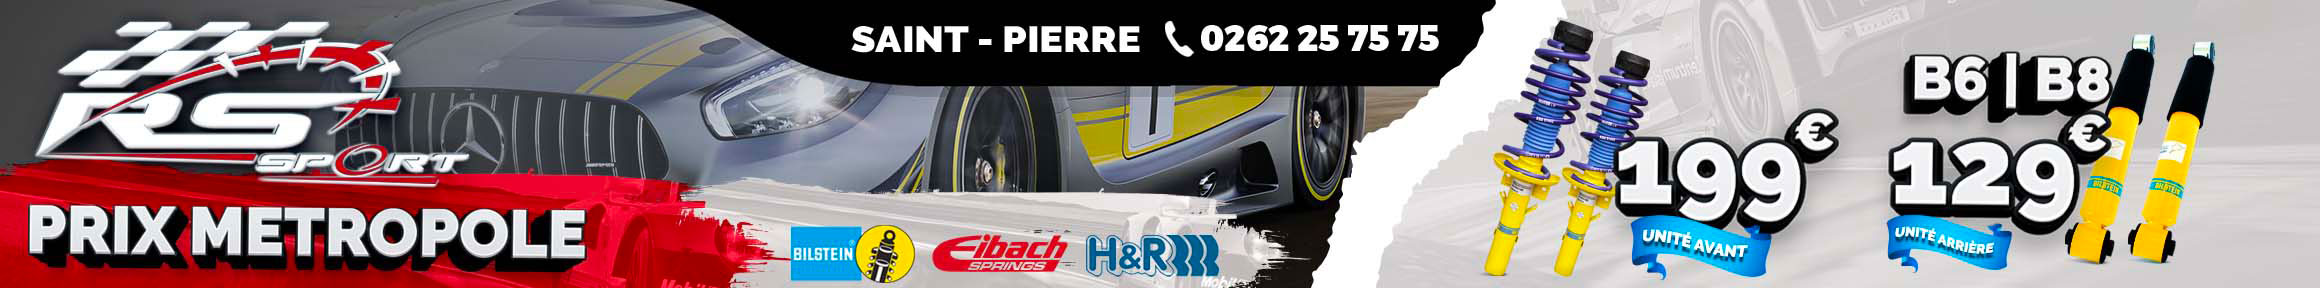 RS SPORT St Pierre